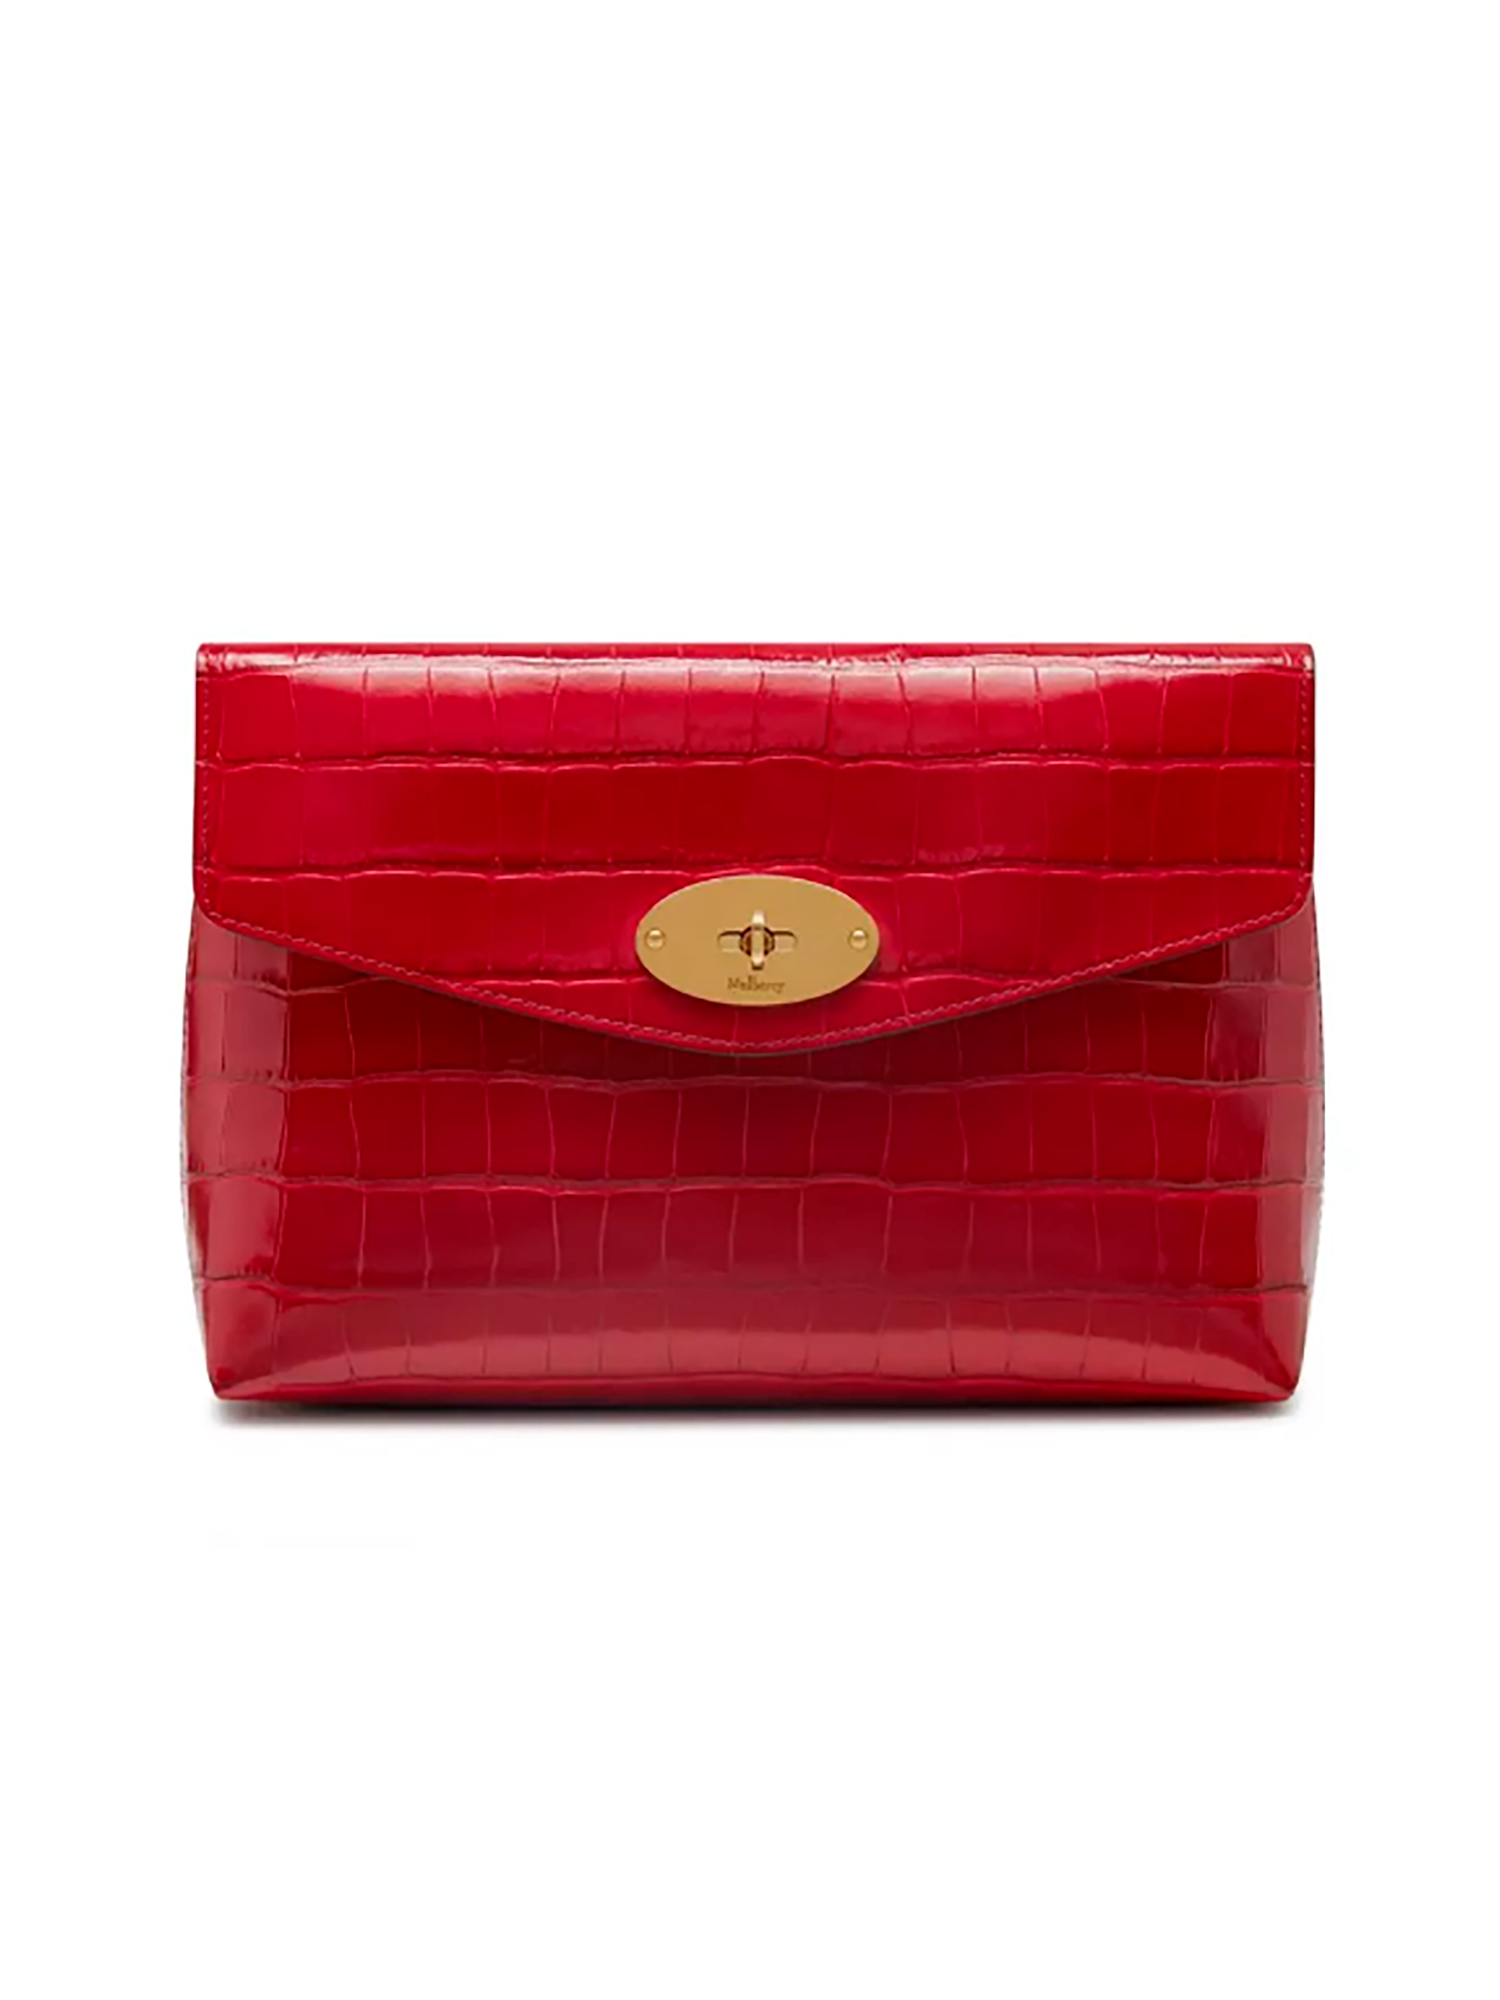 Mulberry Large Darley Cosmetic Shiny Croc Red Berry - RL5804/069J953